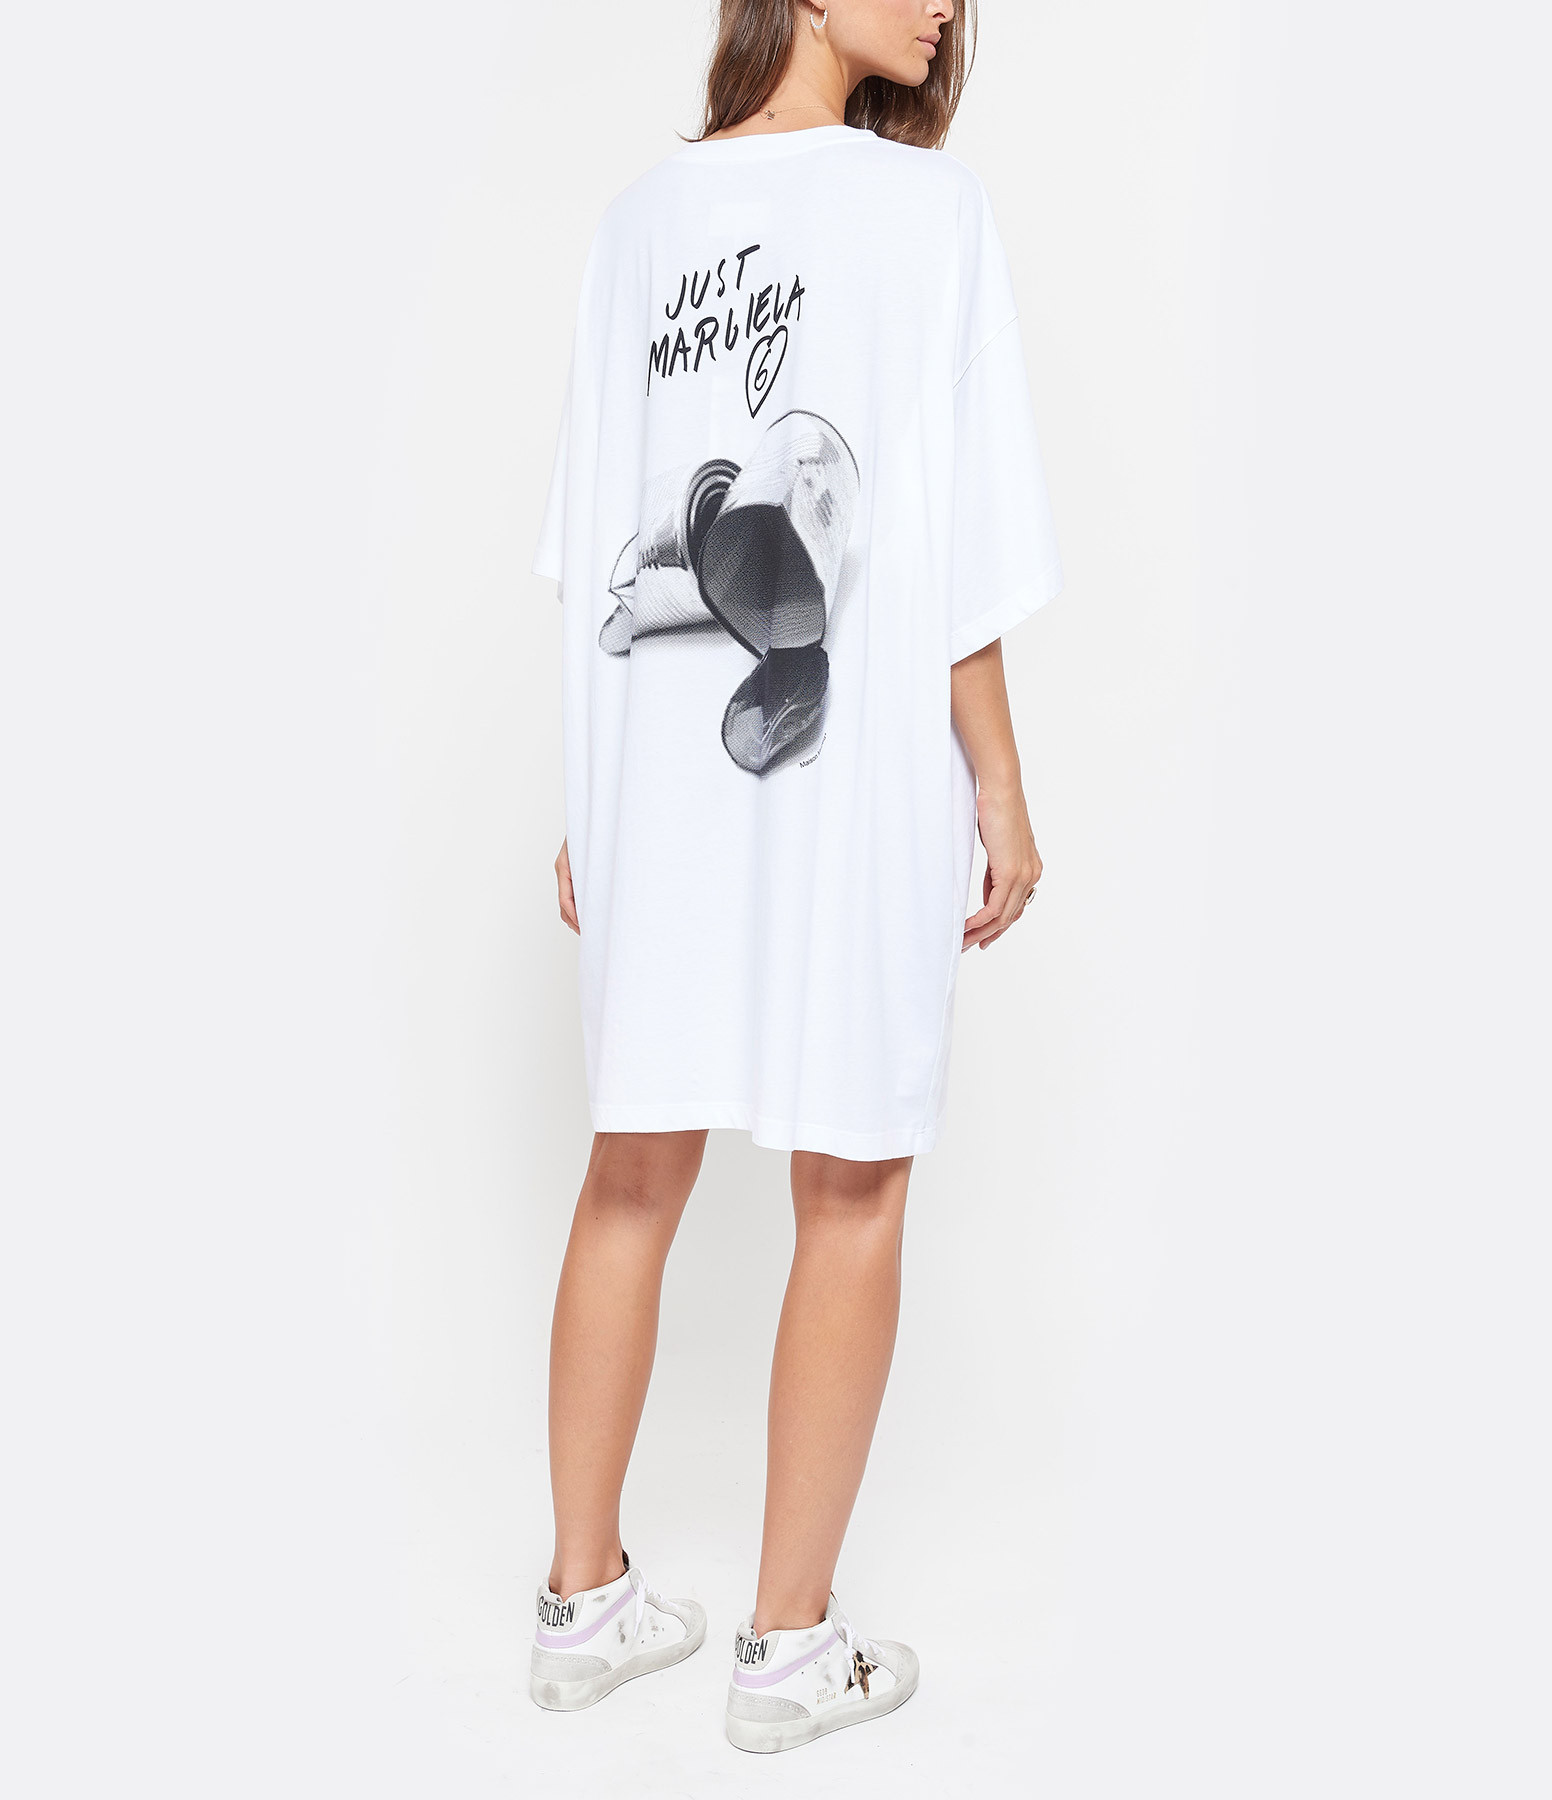 MM6 MAISON MARGIELA - Tee-shirt Long Imprimé Dos Blanc,Collection Studio